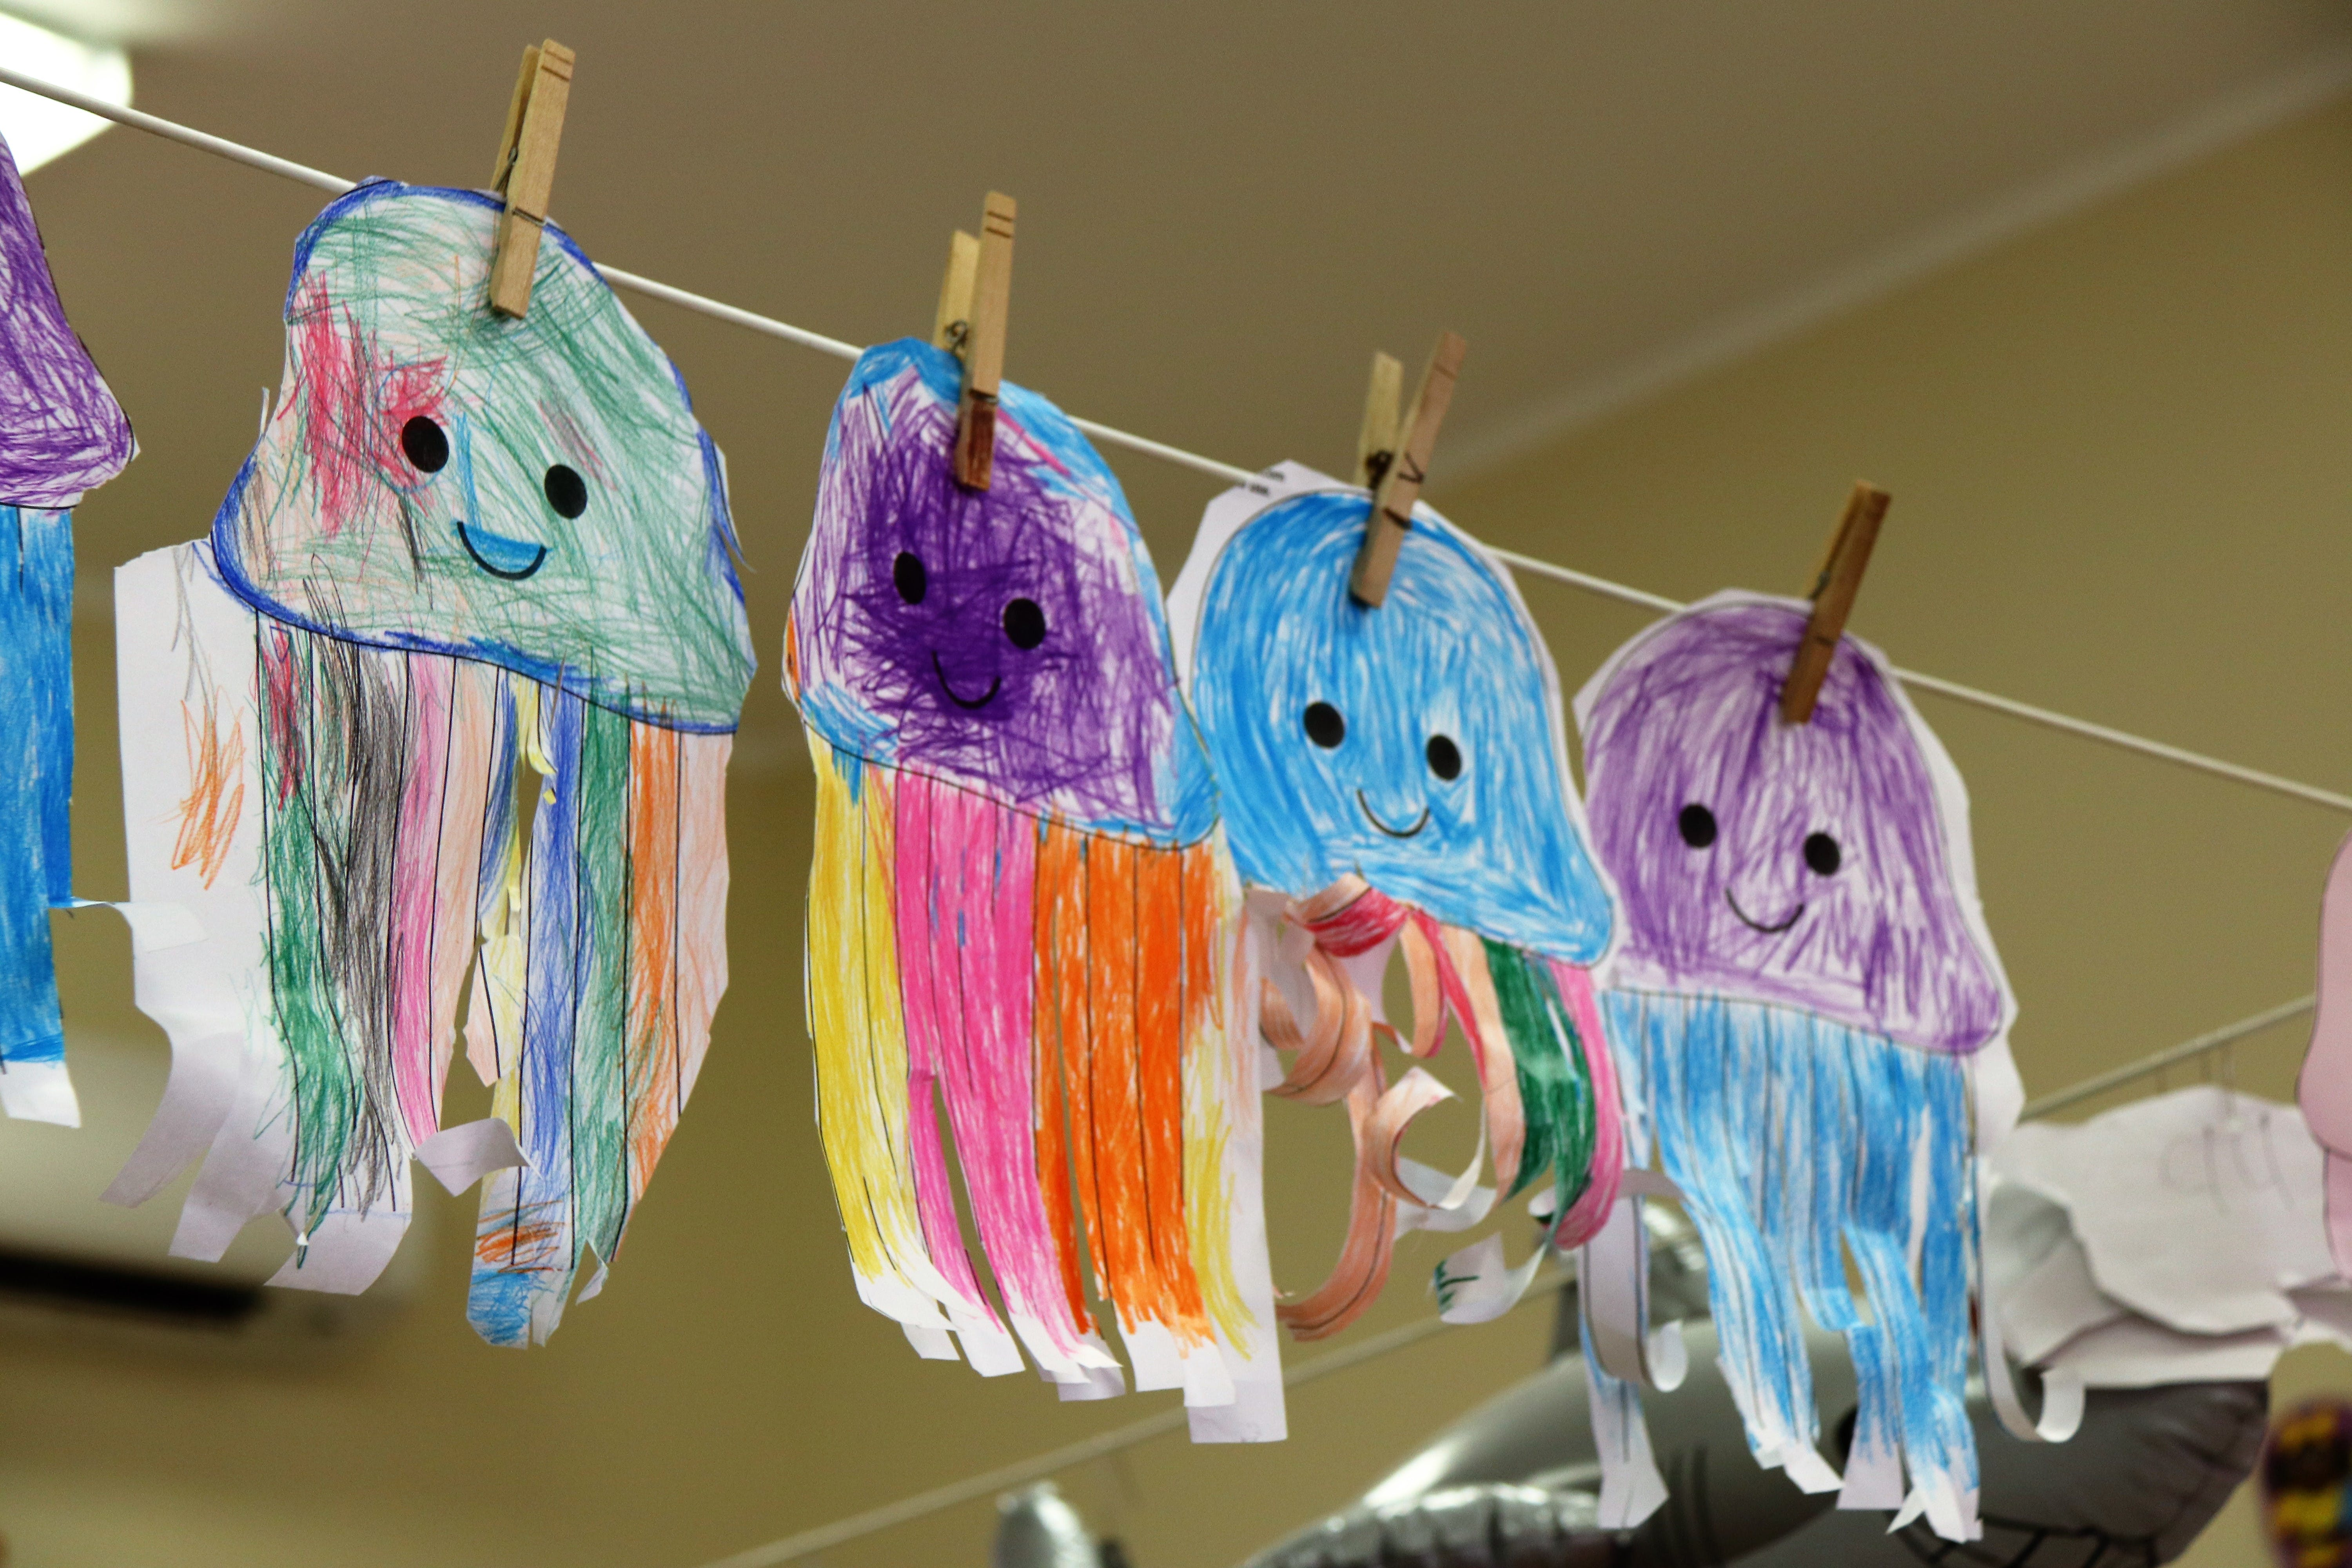 Free stock photo of Children crafts, Children drawings, classroom